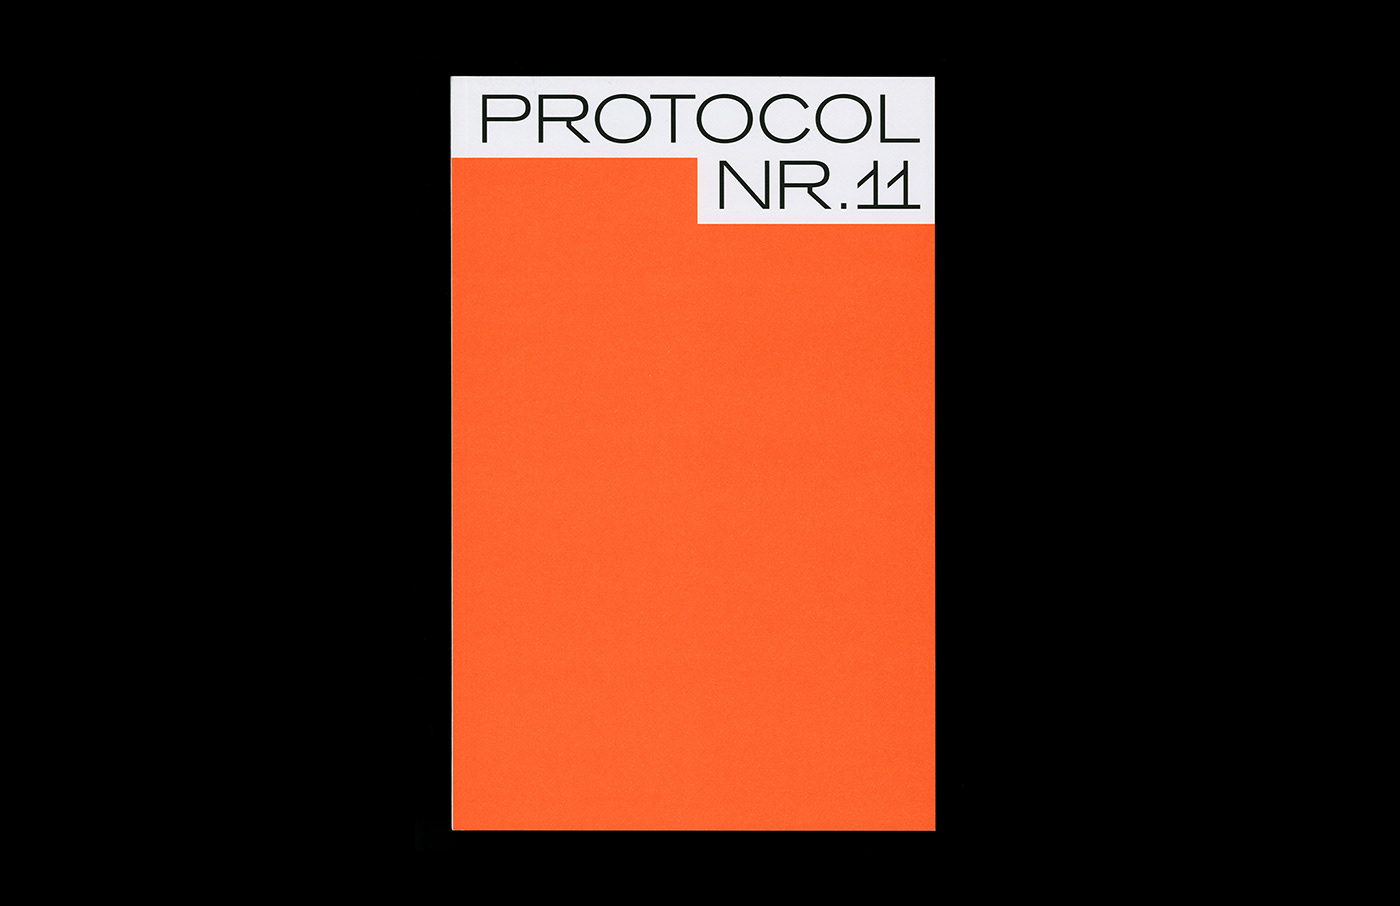 Cover of Protocol Nr.11